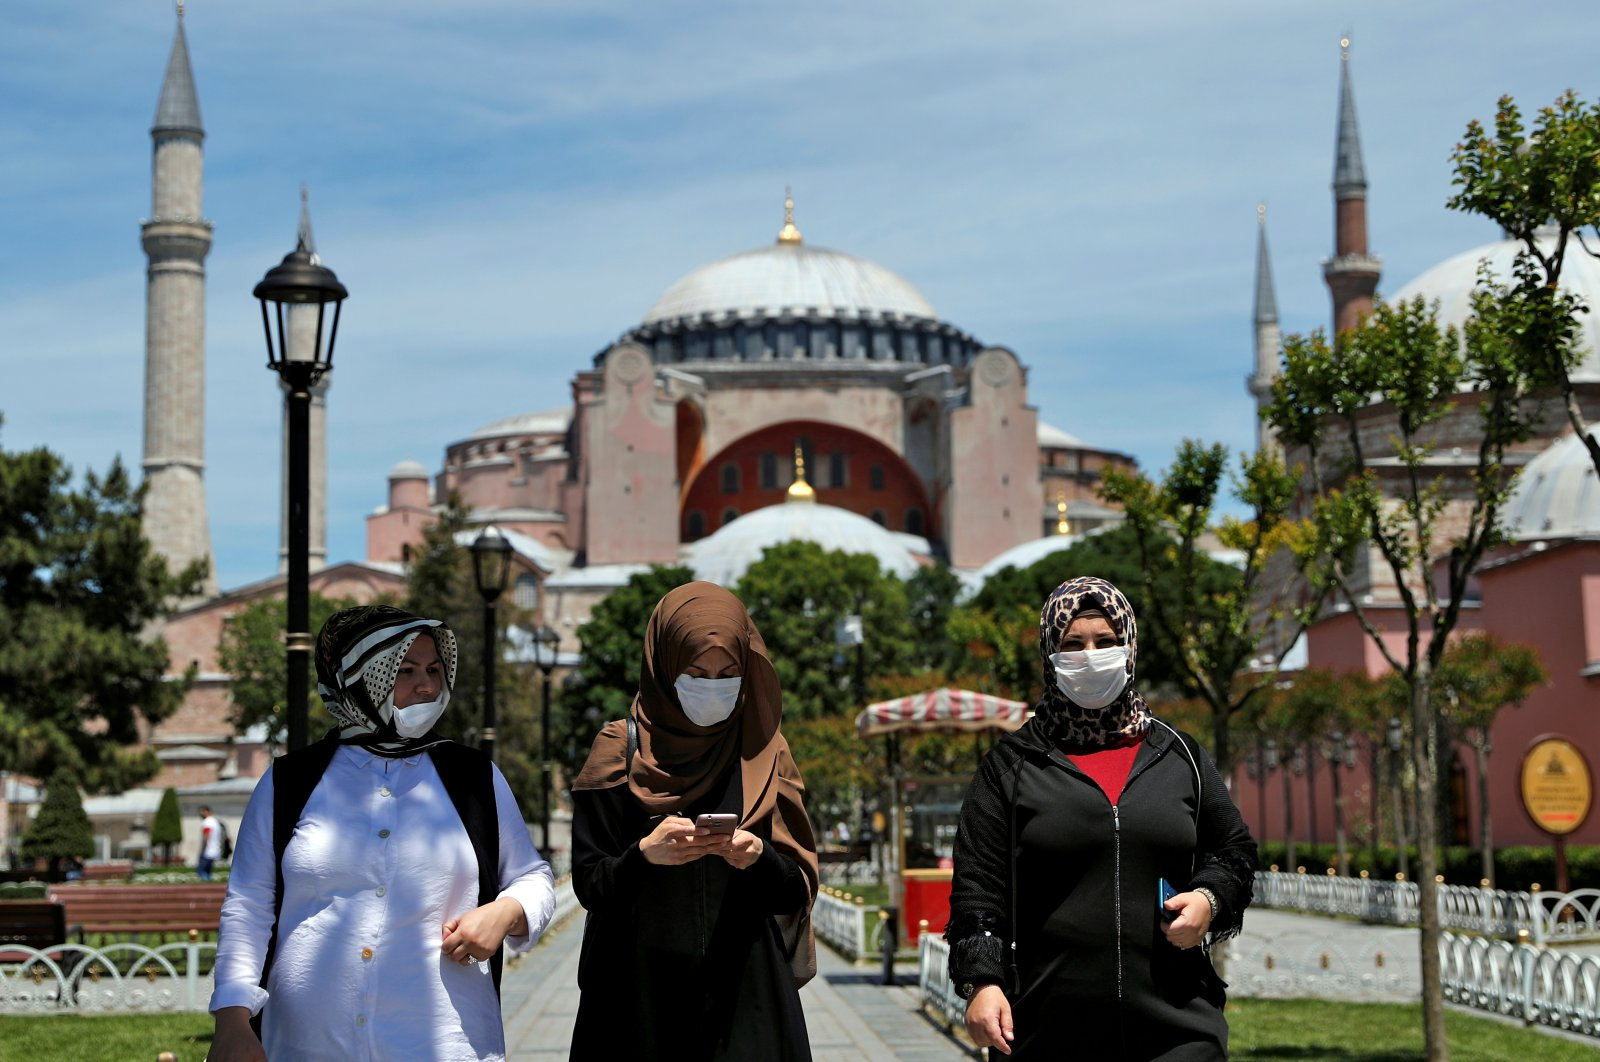 Women wearing face masks walk in front of the Hagia Sophia Mosque at the popular tourist spot Sultanahmet Square, Istanbul, Turkey, June 5, 2020. (Reuters Photo)